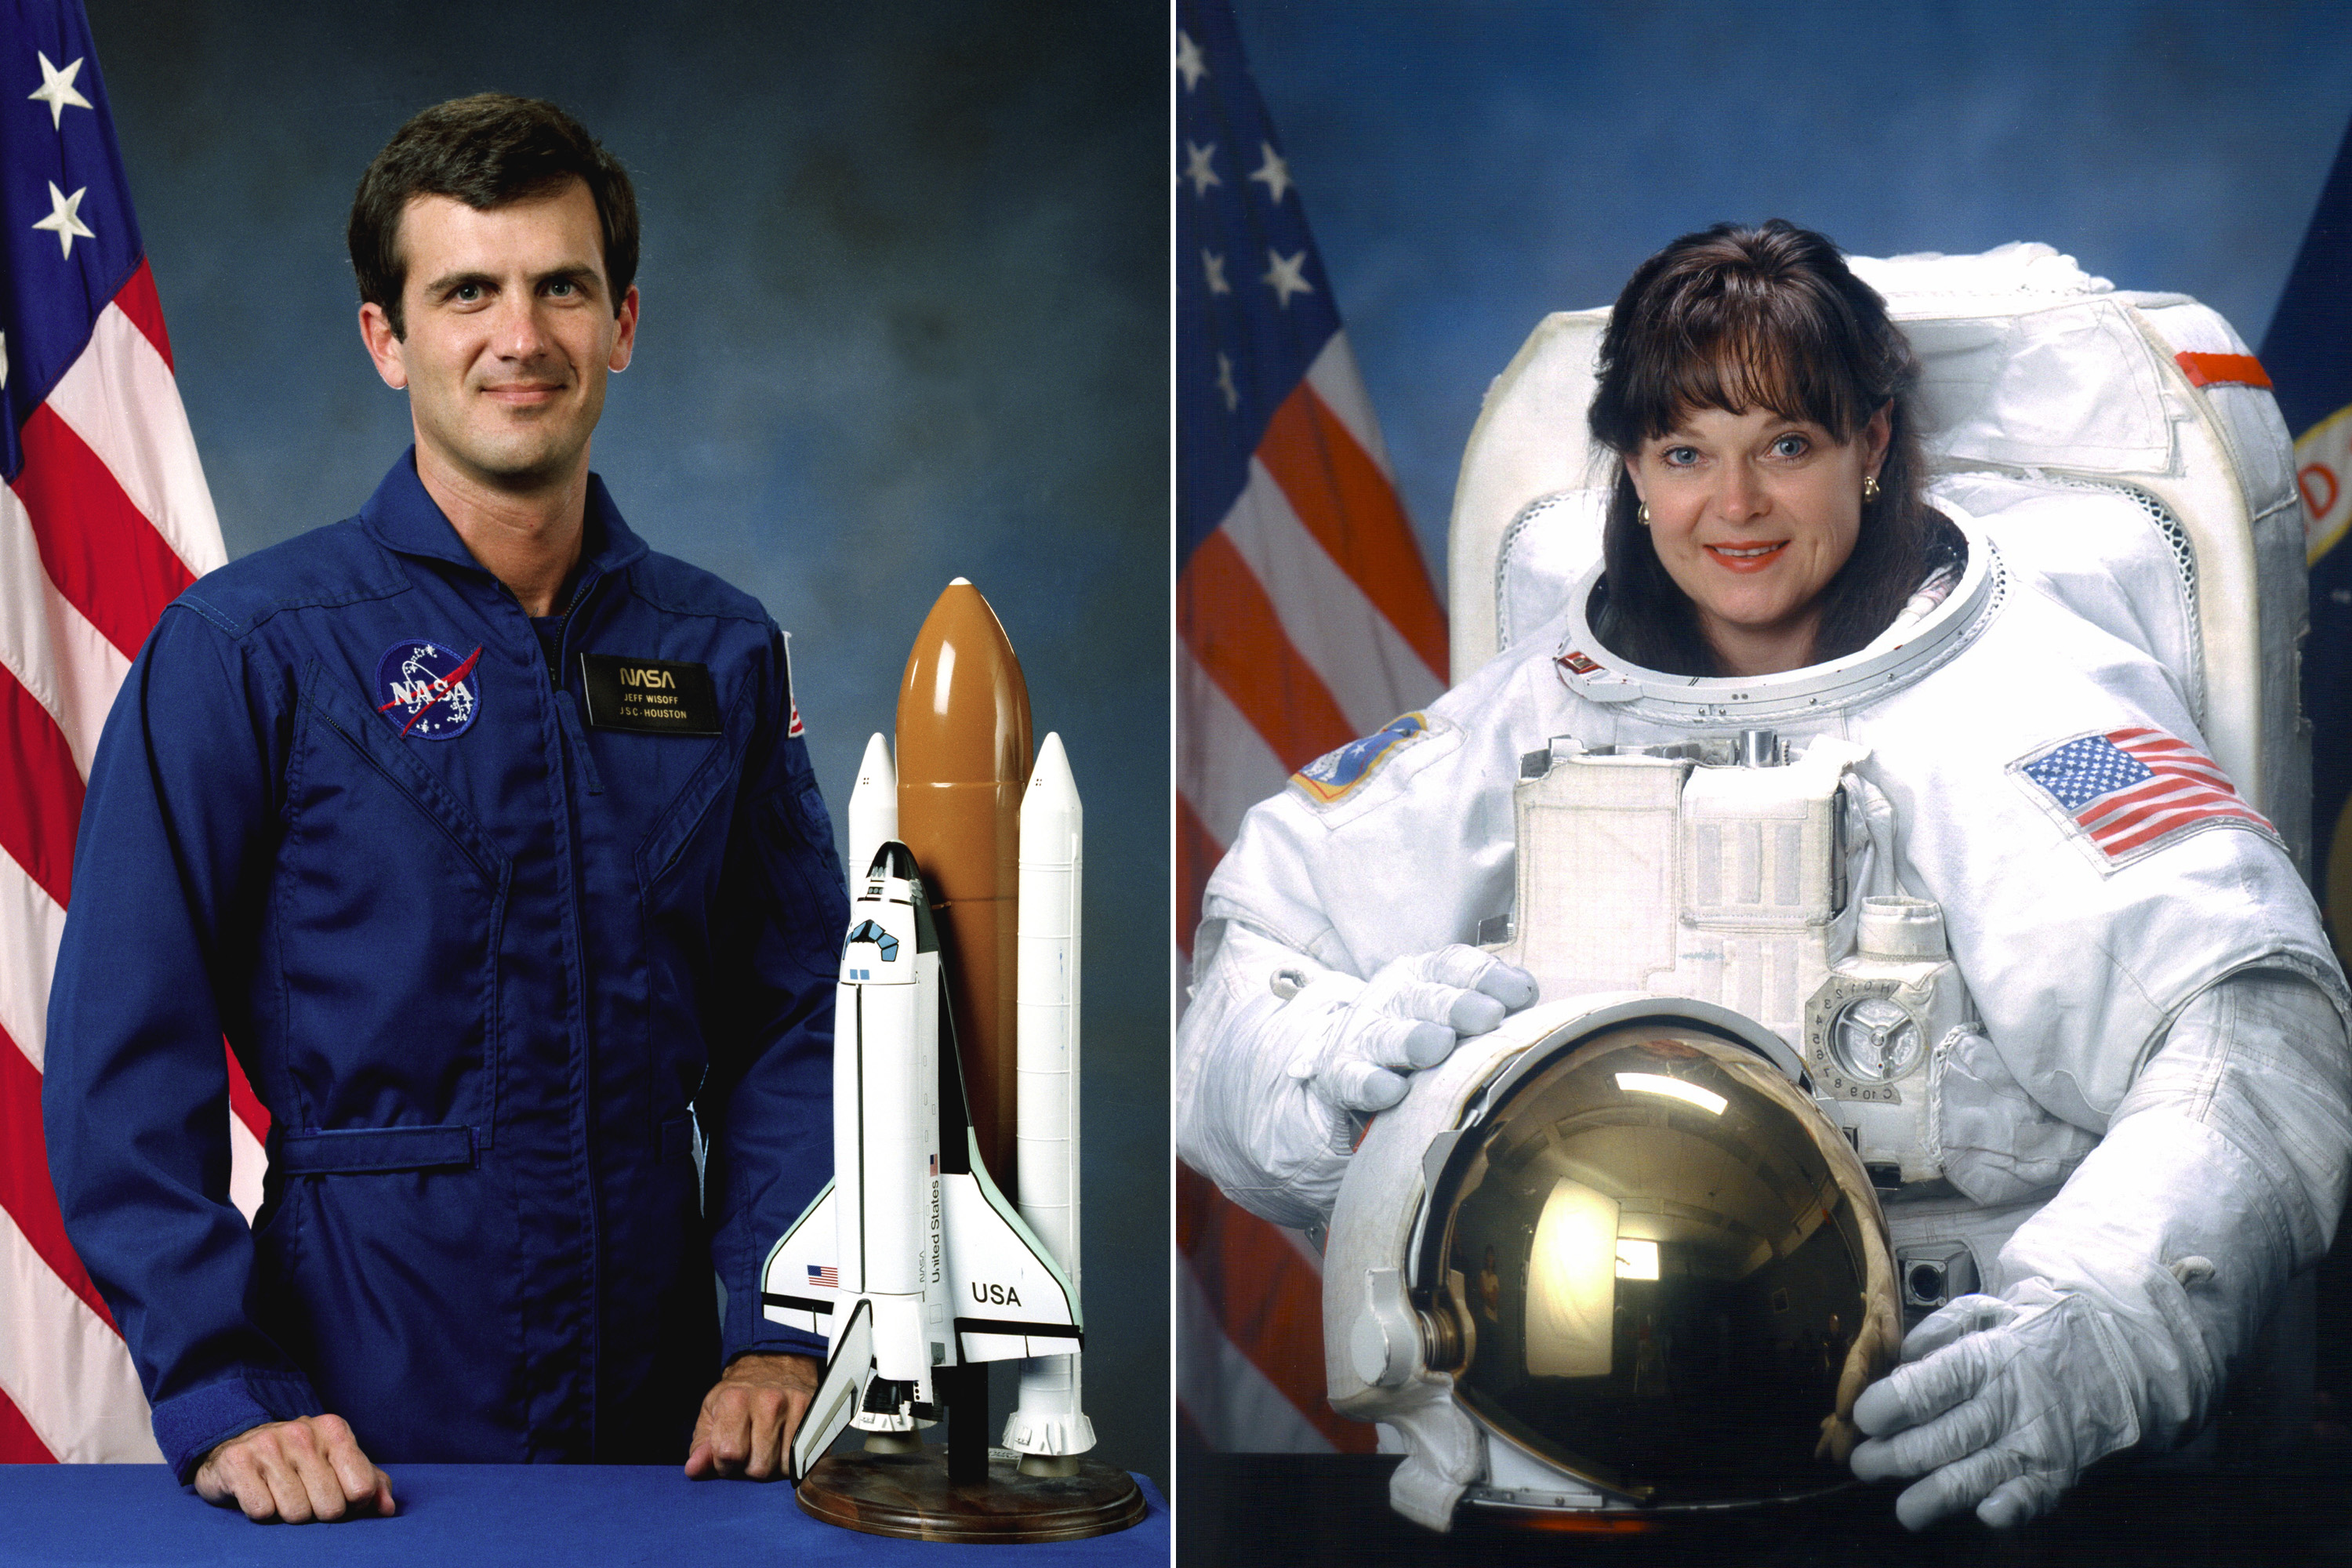 Peter Wisoff and Tammy Jernigan were married in 1999.  Wisoff is a veteran of 4 space flights, including the STS-57 Endeavour mission in 1993.  Jernigan is a veteran of 5 space flights, including the STS-96 Discovery mission in 1999, during which the crew performed the first docking with the International Space Station.